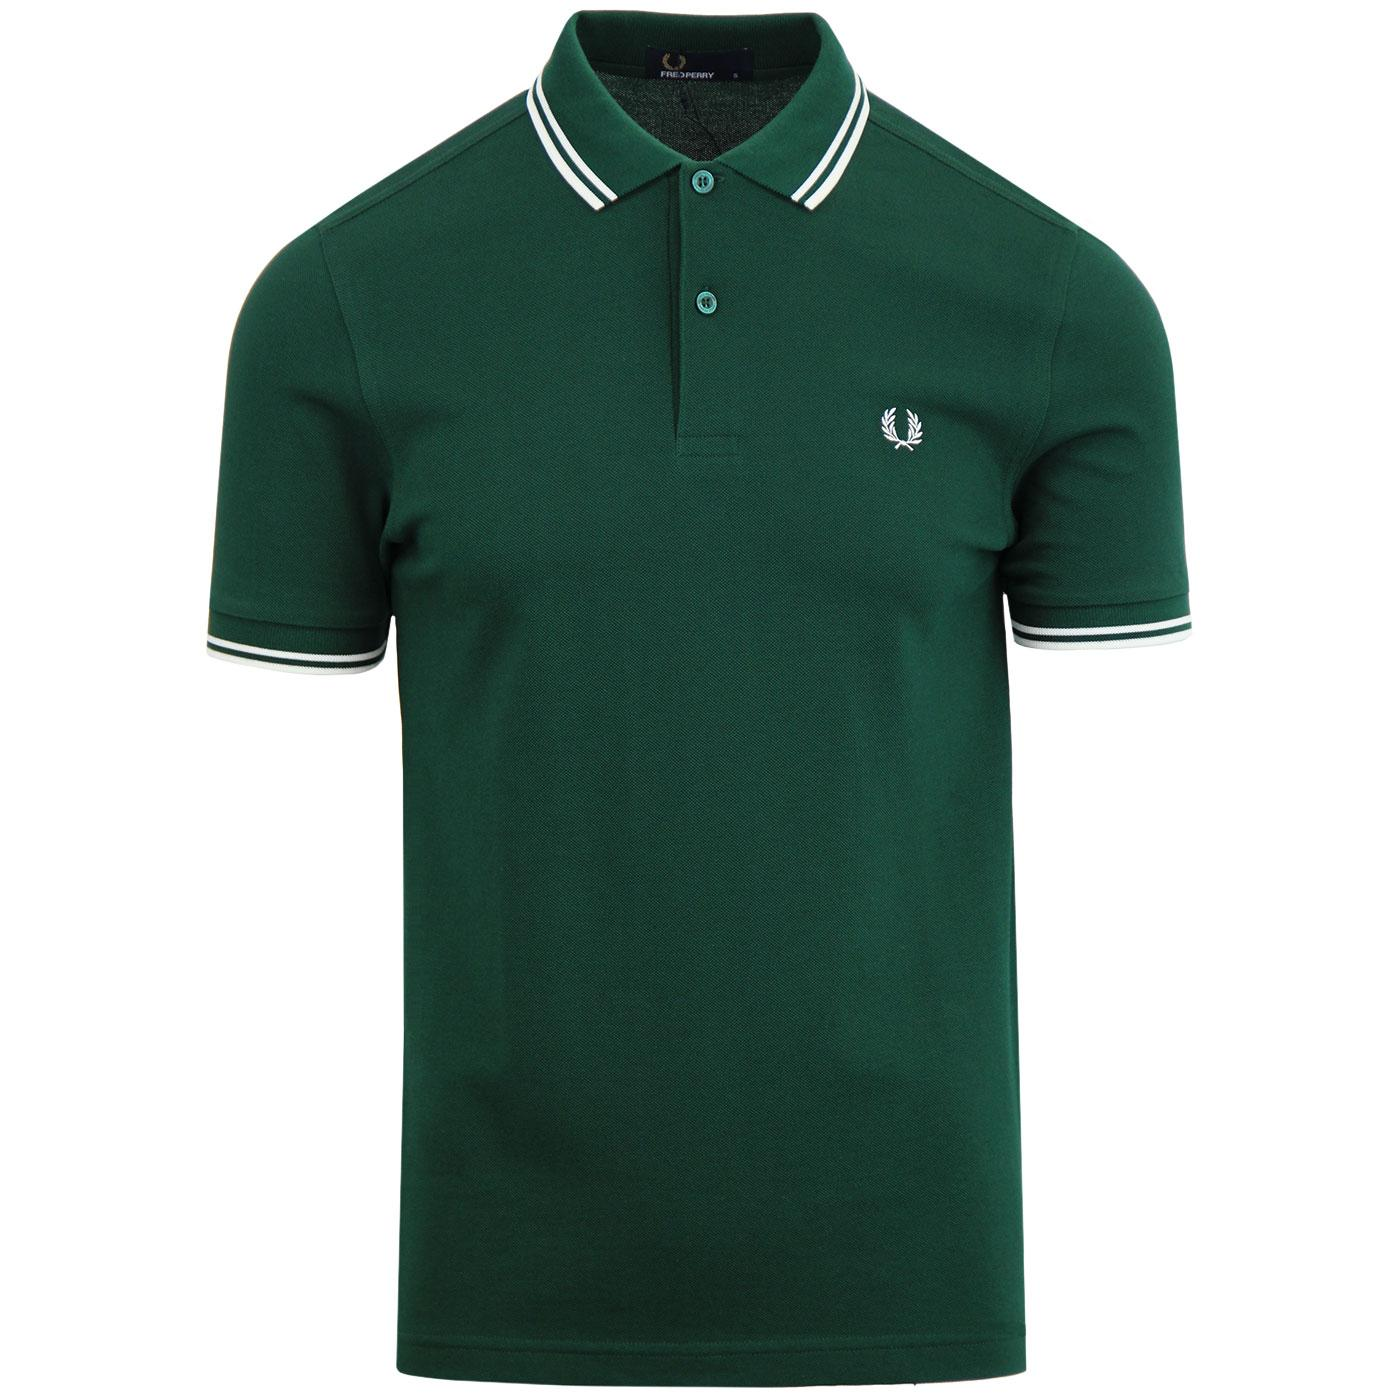 FRED PERRY M3600 Mod Twin Tipped Polo Shirt (Ivy)